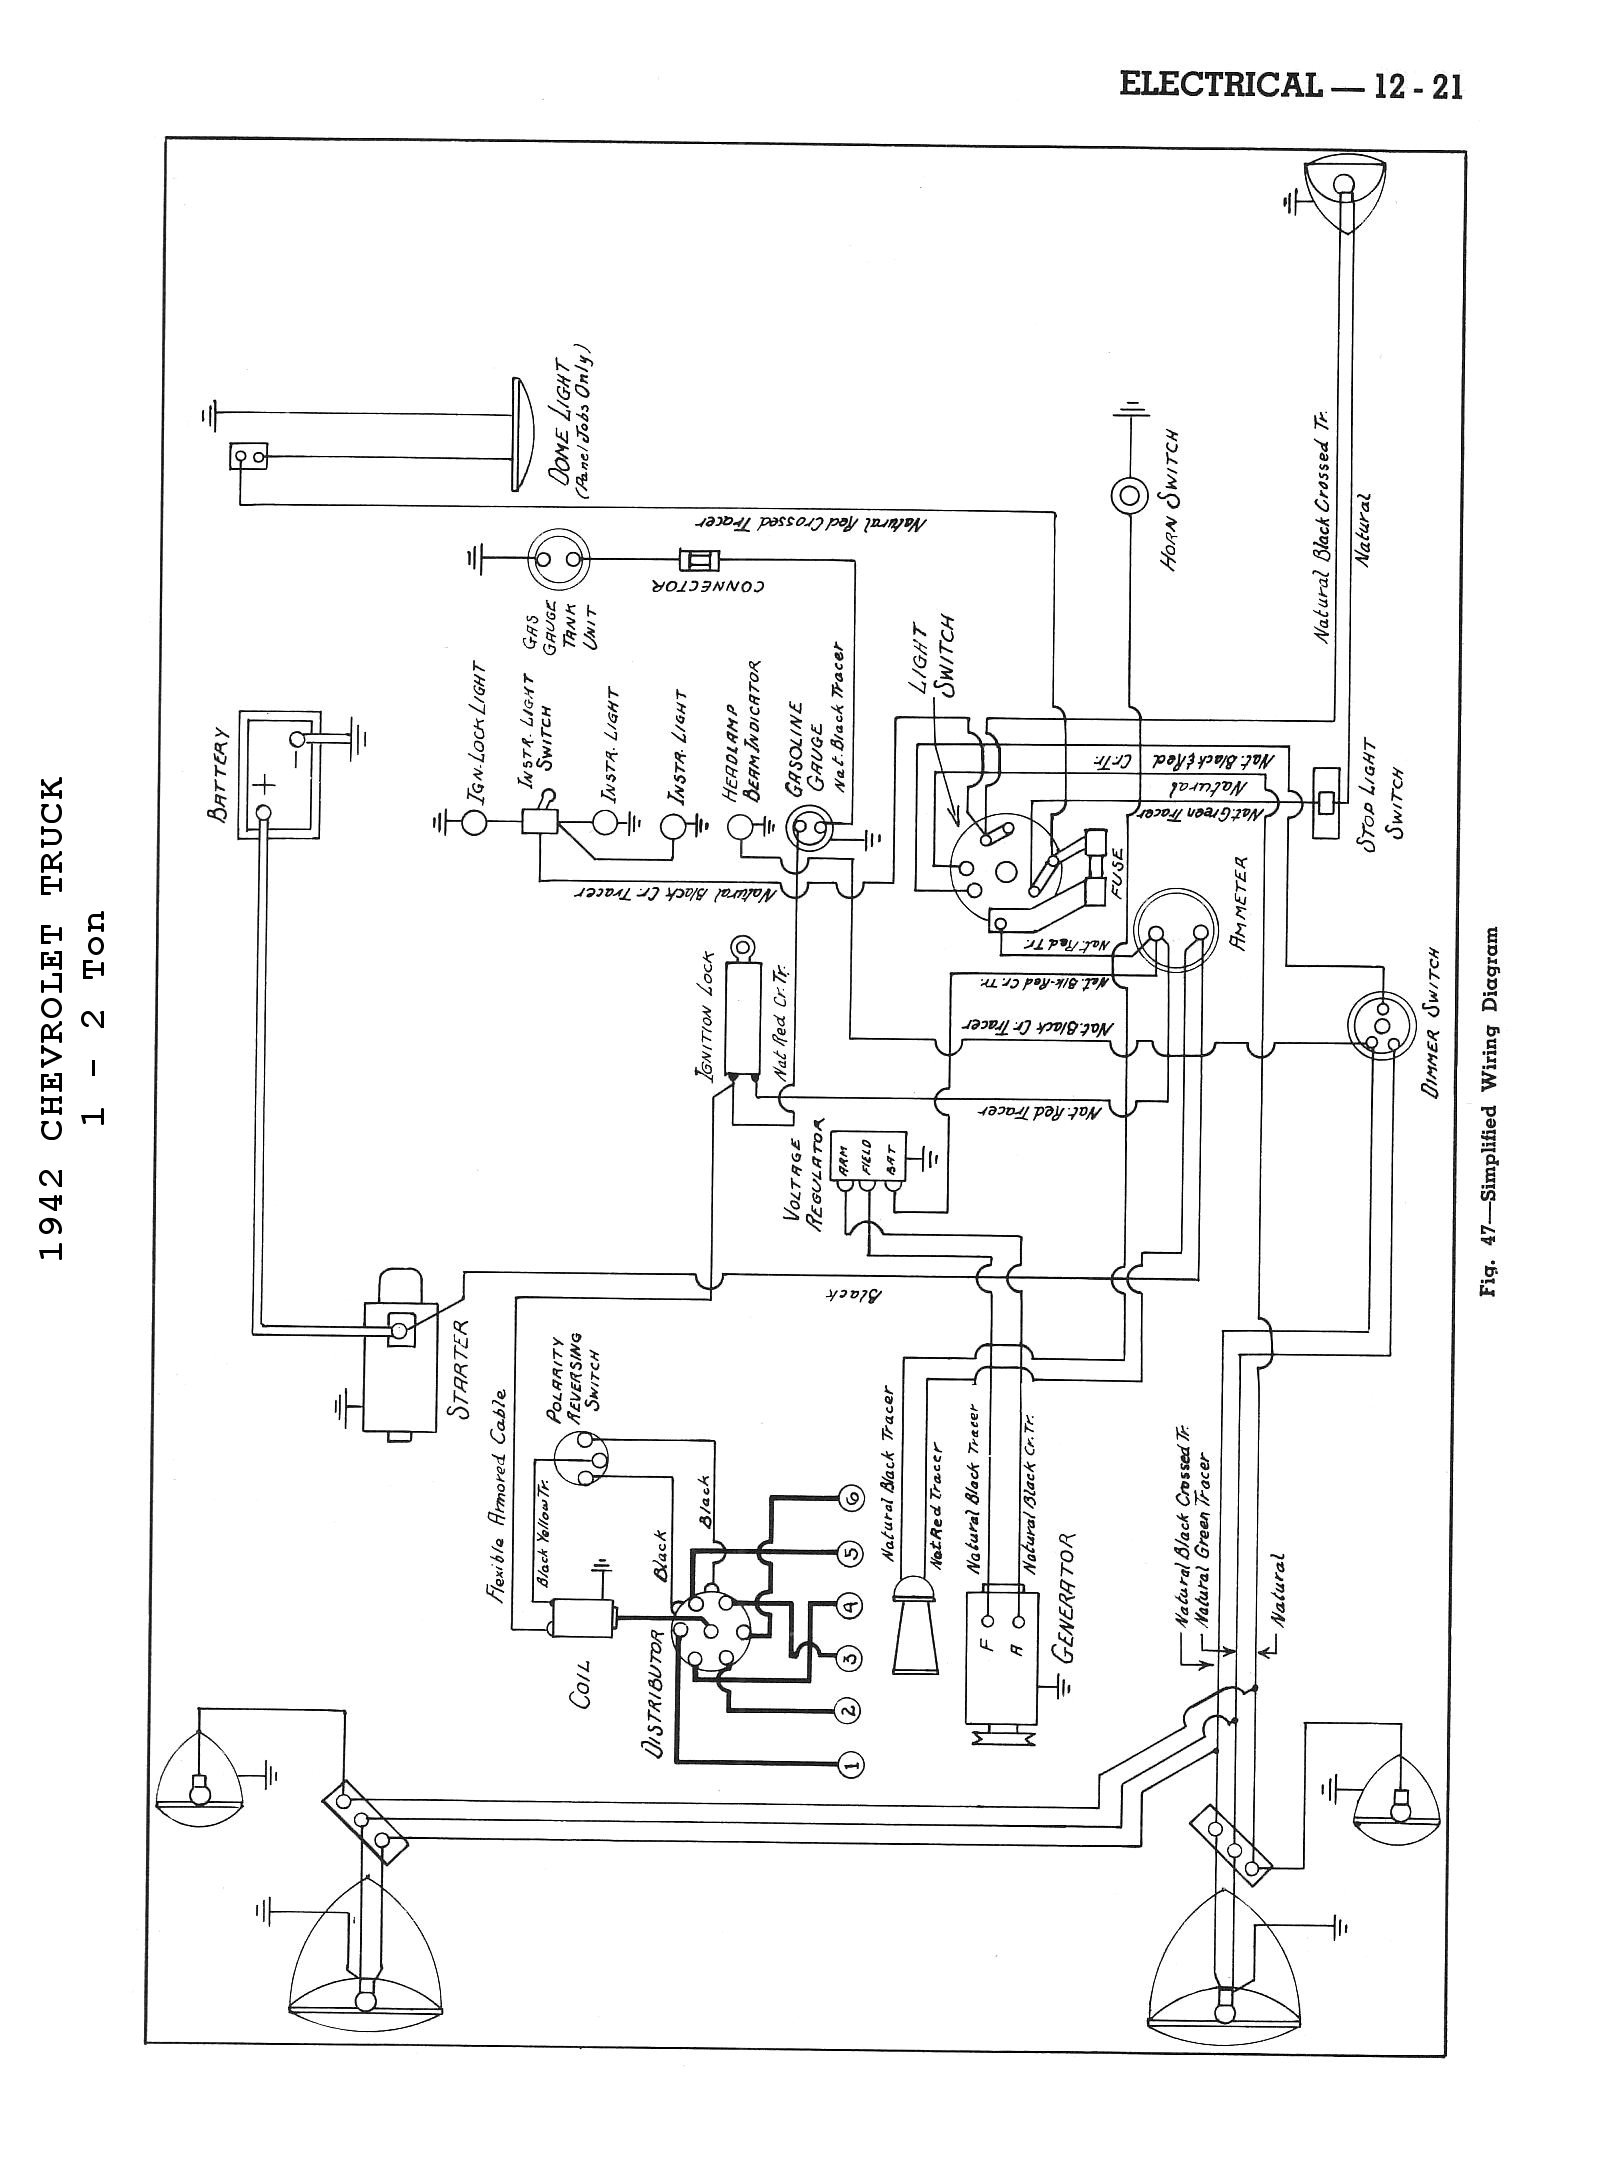 1959 Long Bed Fleetside Wiring Diagrams together with 23114 Electric Pto Problem likewise Inline Six Engine Diagram Get Free Image About Wiring in addition HP PartList moreover 2 Pole 3 Wire Diagram. on 1946 chevy wiring diagram